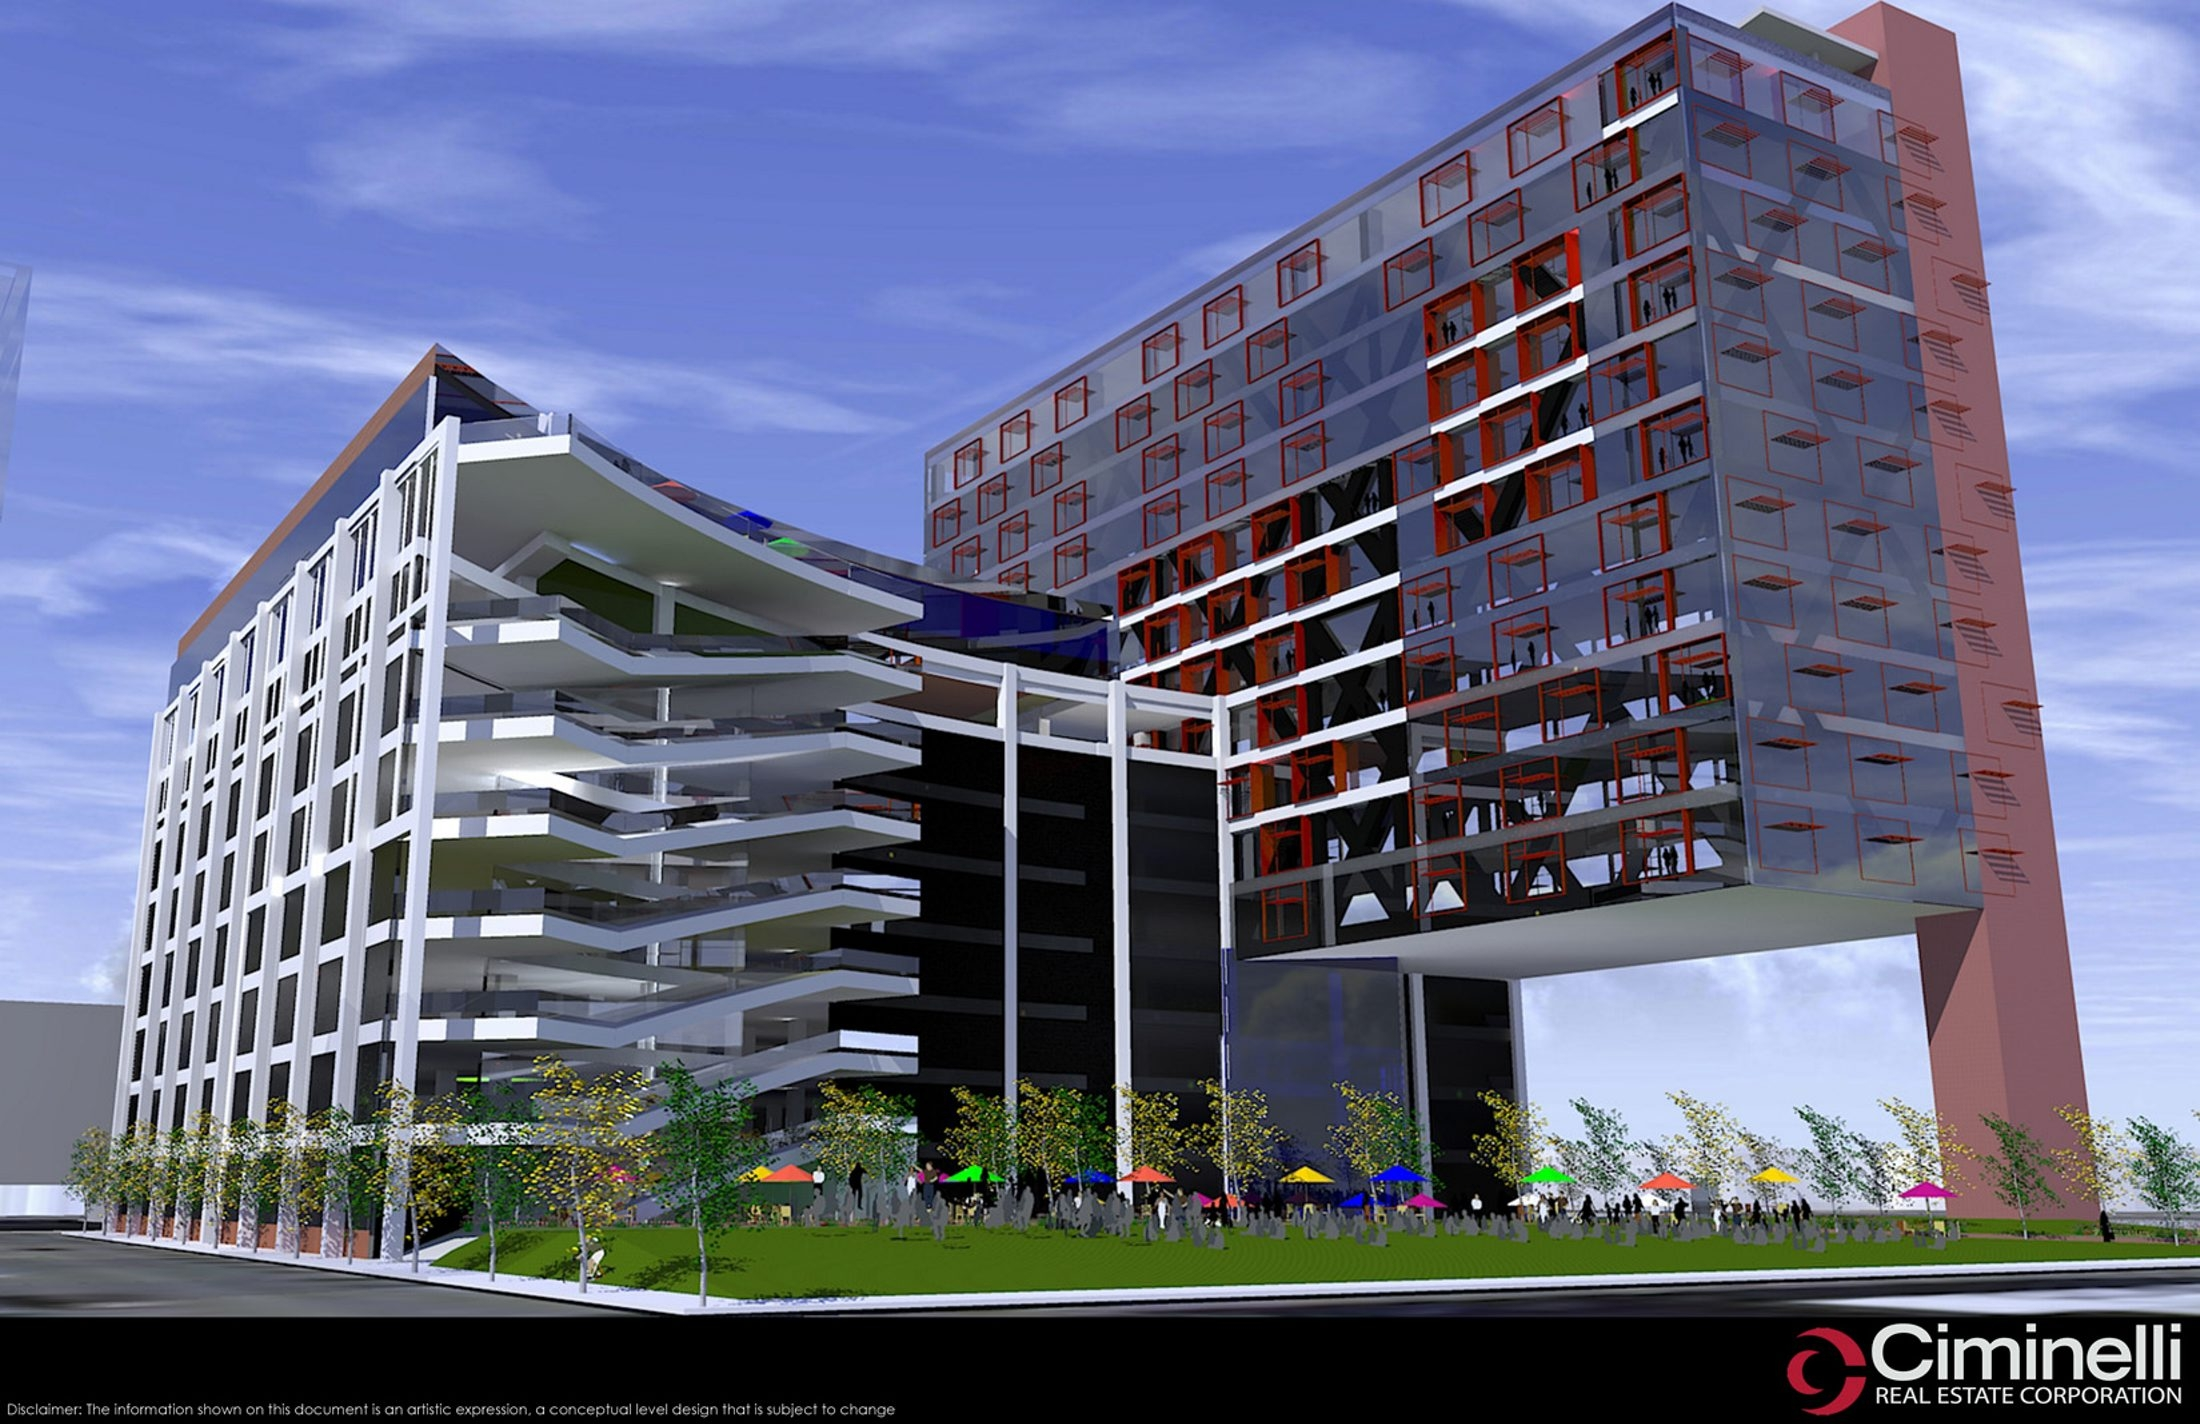 Conceptual drawing of the Tops, apartments, and parking structure Ciminelli is building on Ellicott St. in Buffalo.